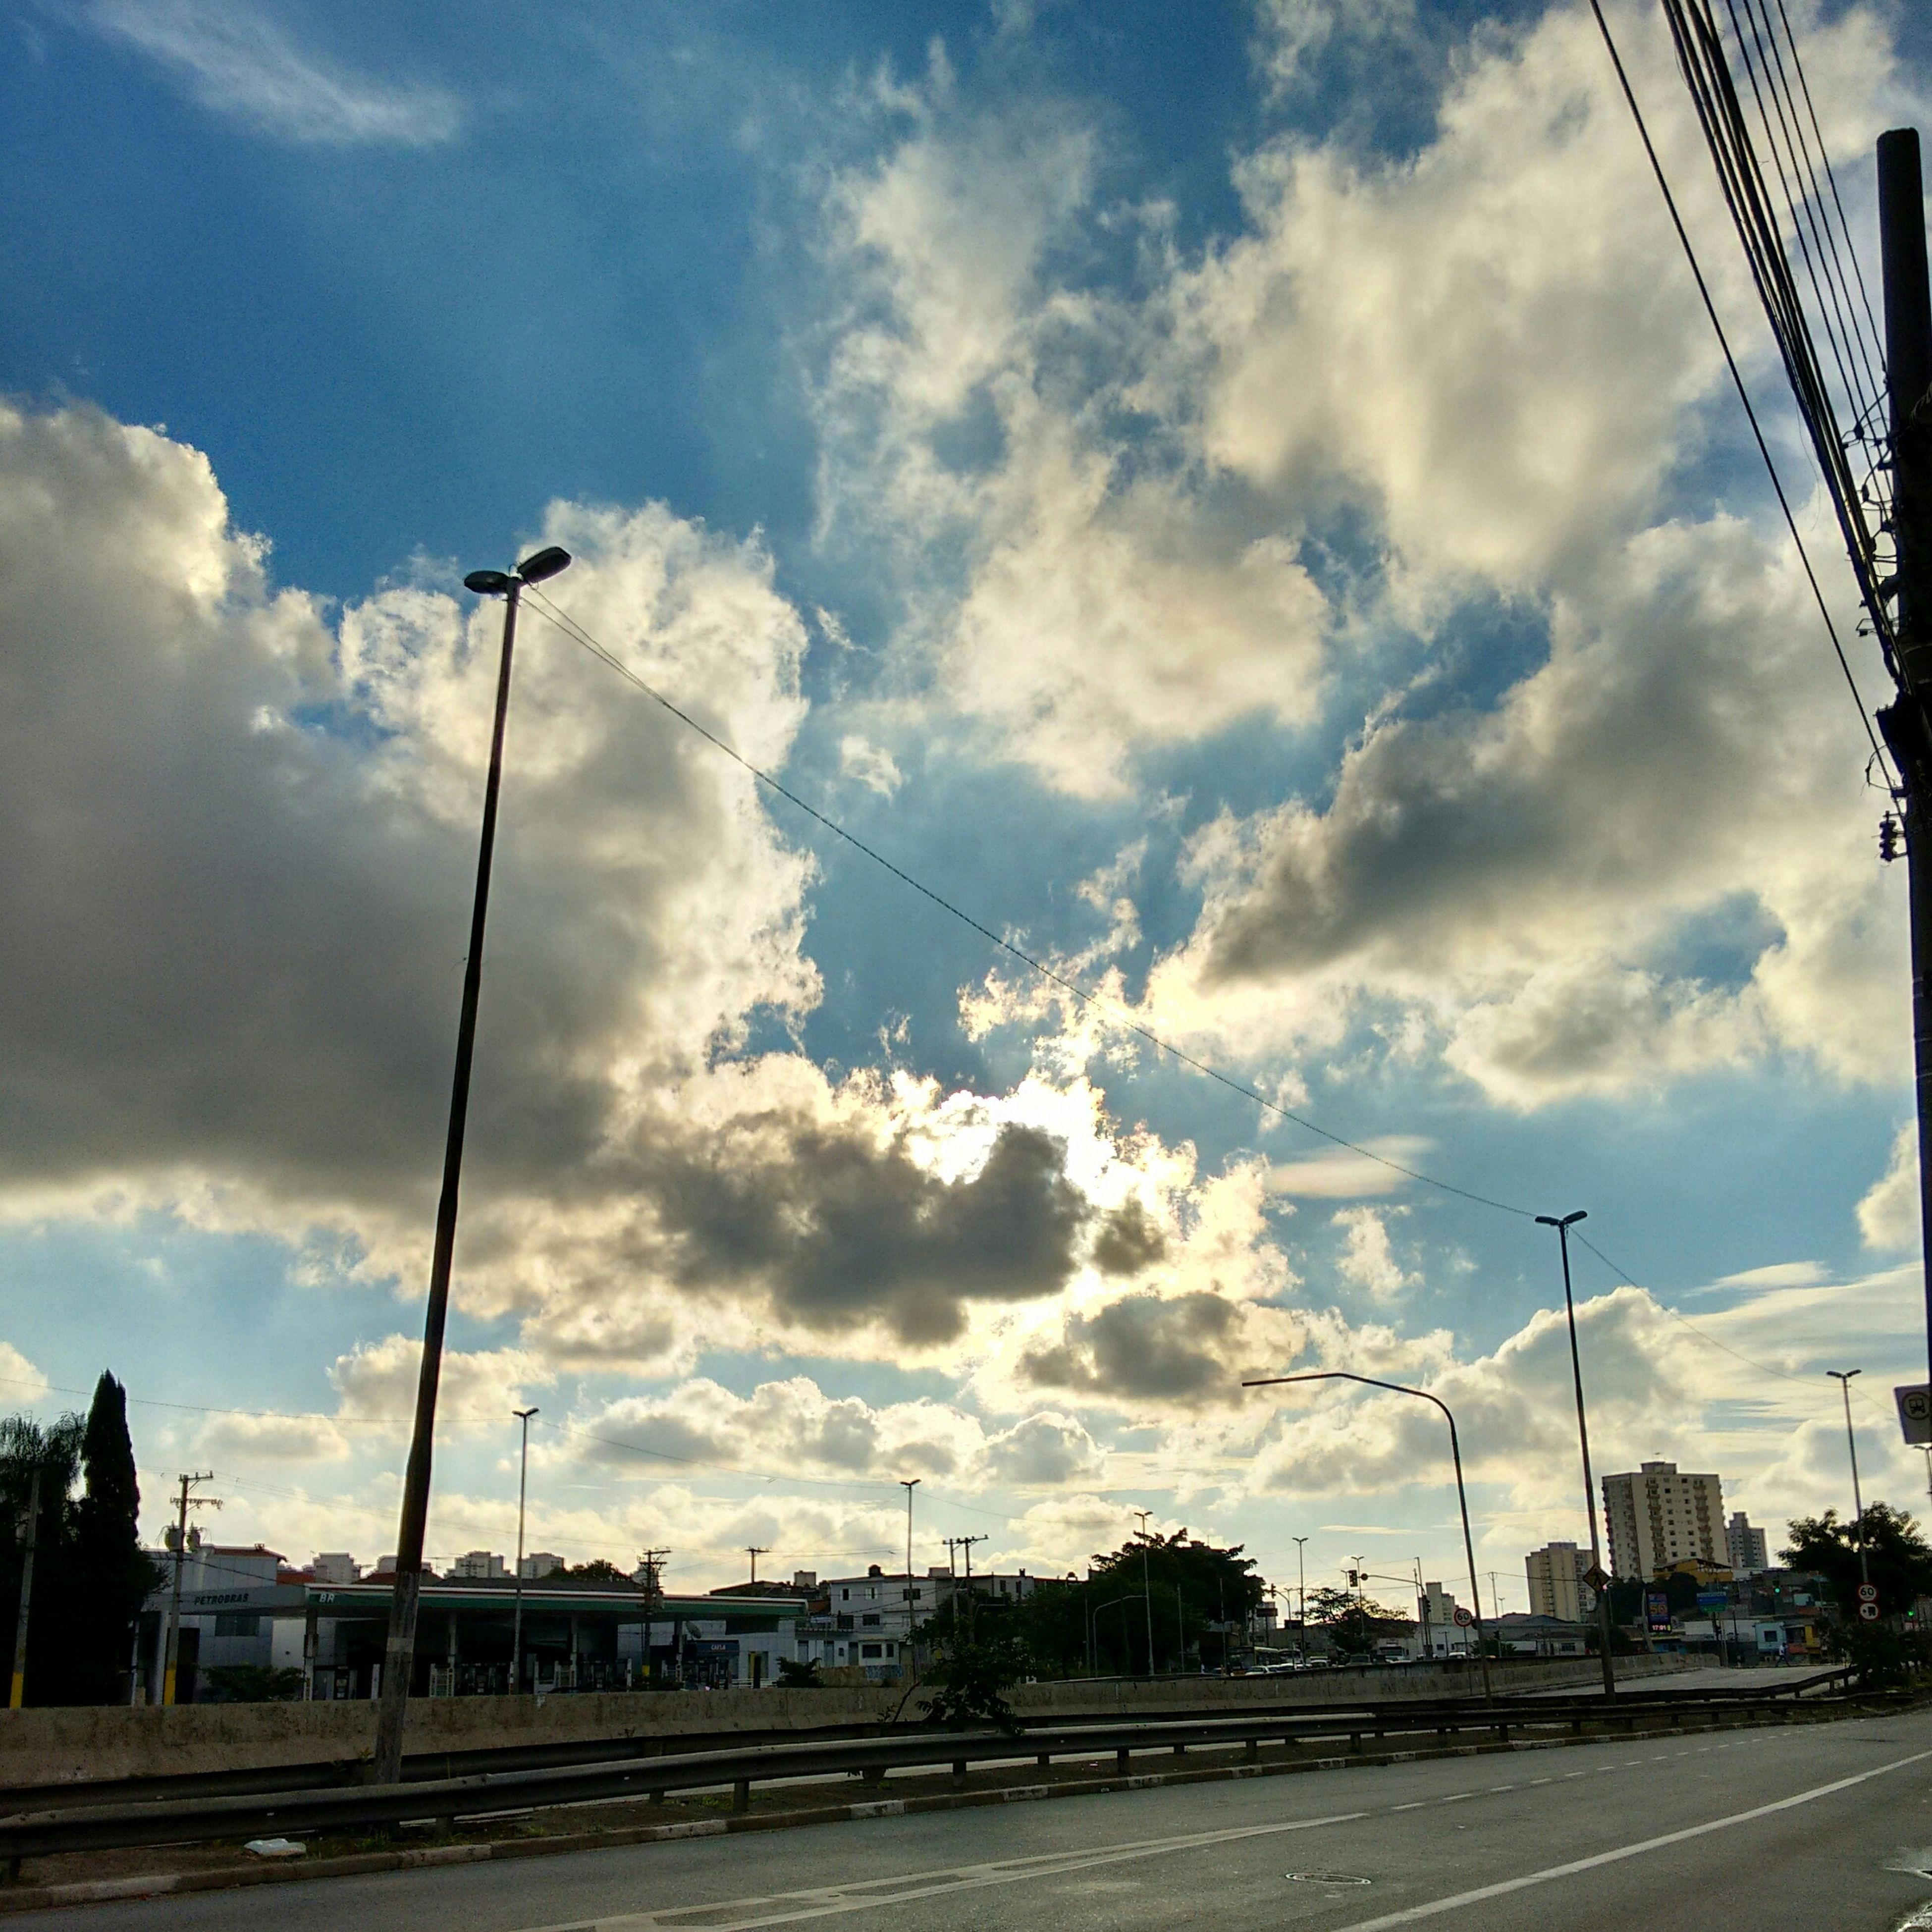 sky, transportation, power line, street light, electricity pylon, cloud - sky, road, the way forward, electricity, built structure, building exterior, cable, connection, power supply, street, cloudy, architecture, cloud, car, diminishing perspective